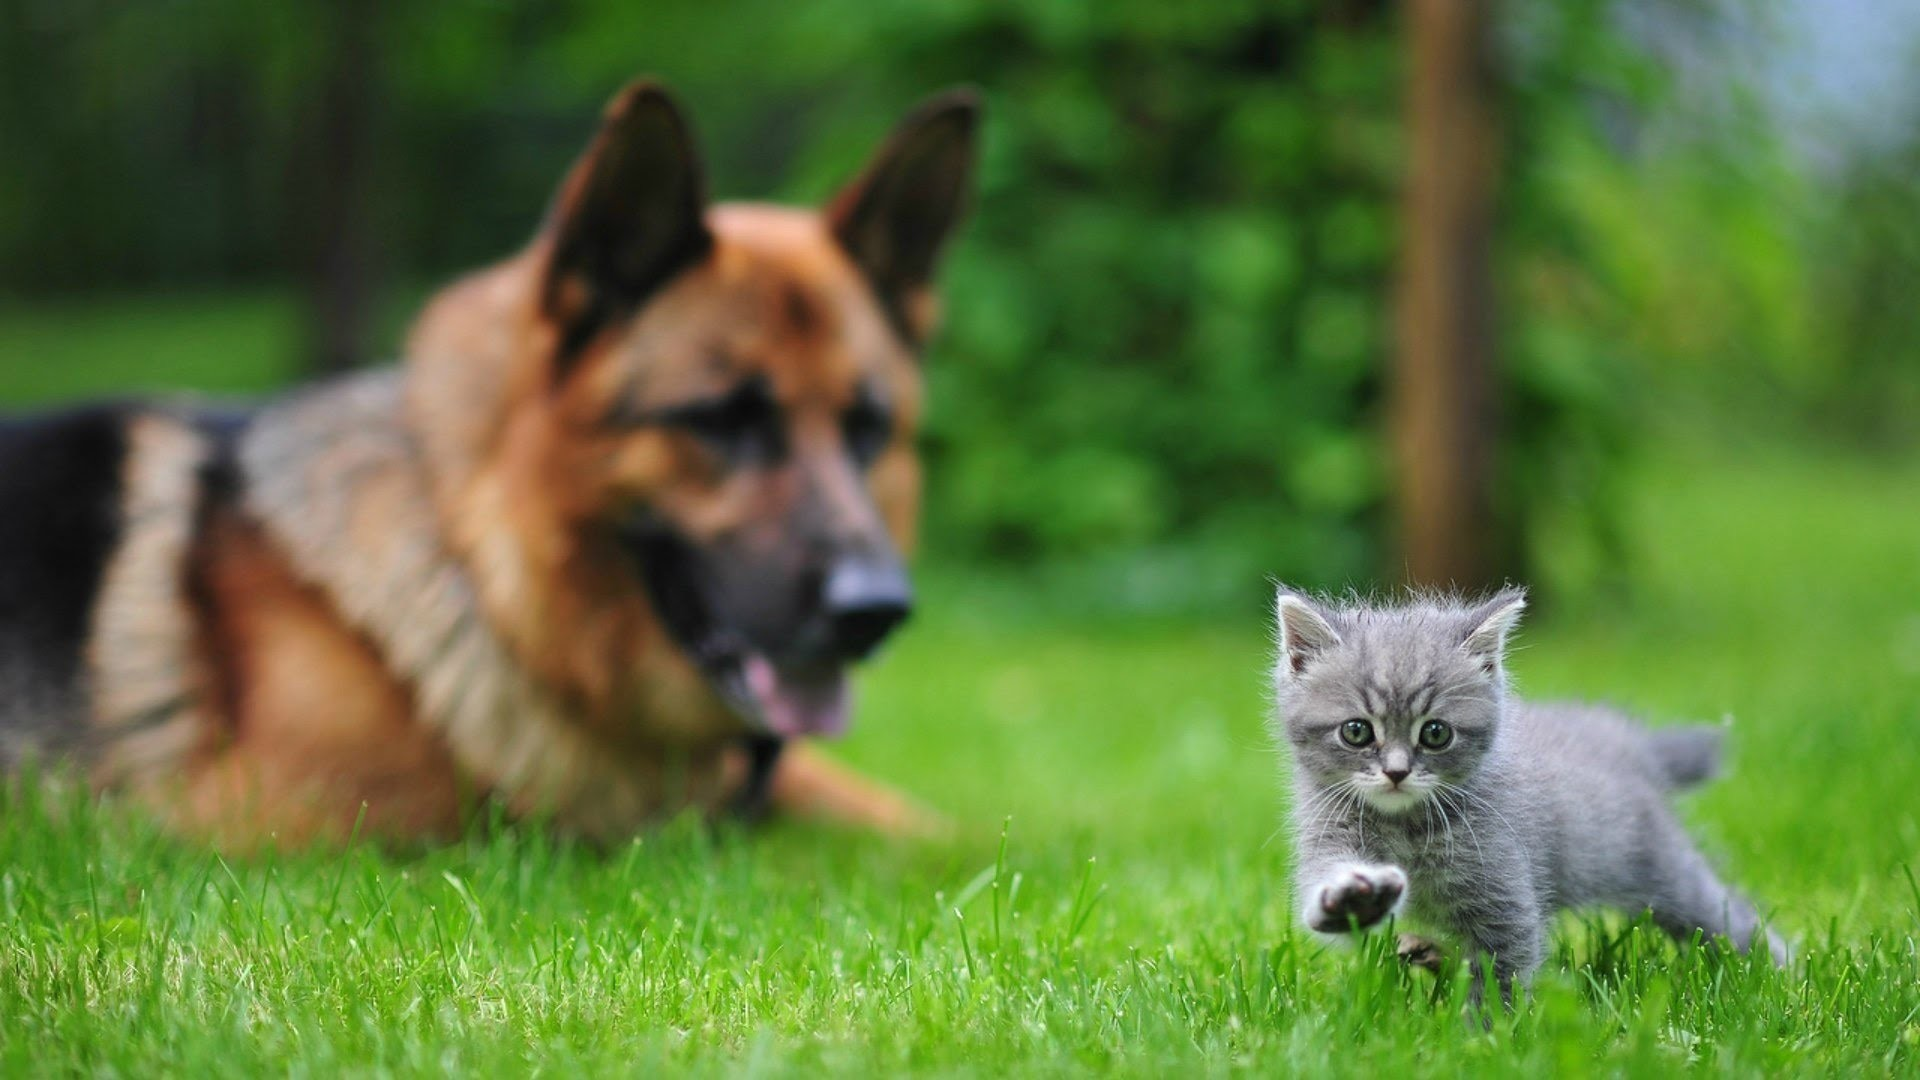 Wallpaper crazy cats and dogs 57 images - Animal 1920x1080 ...